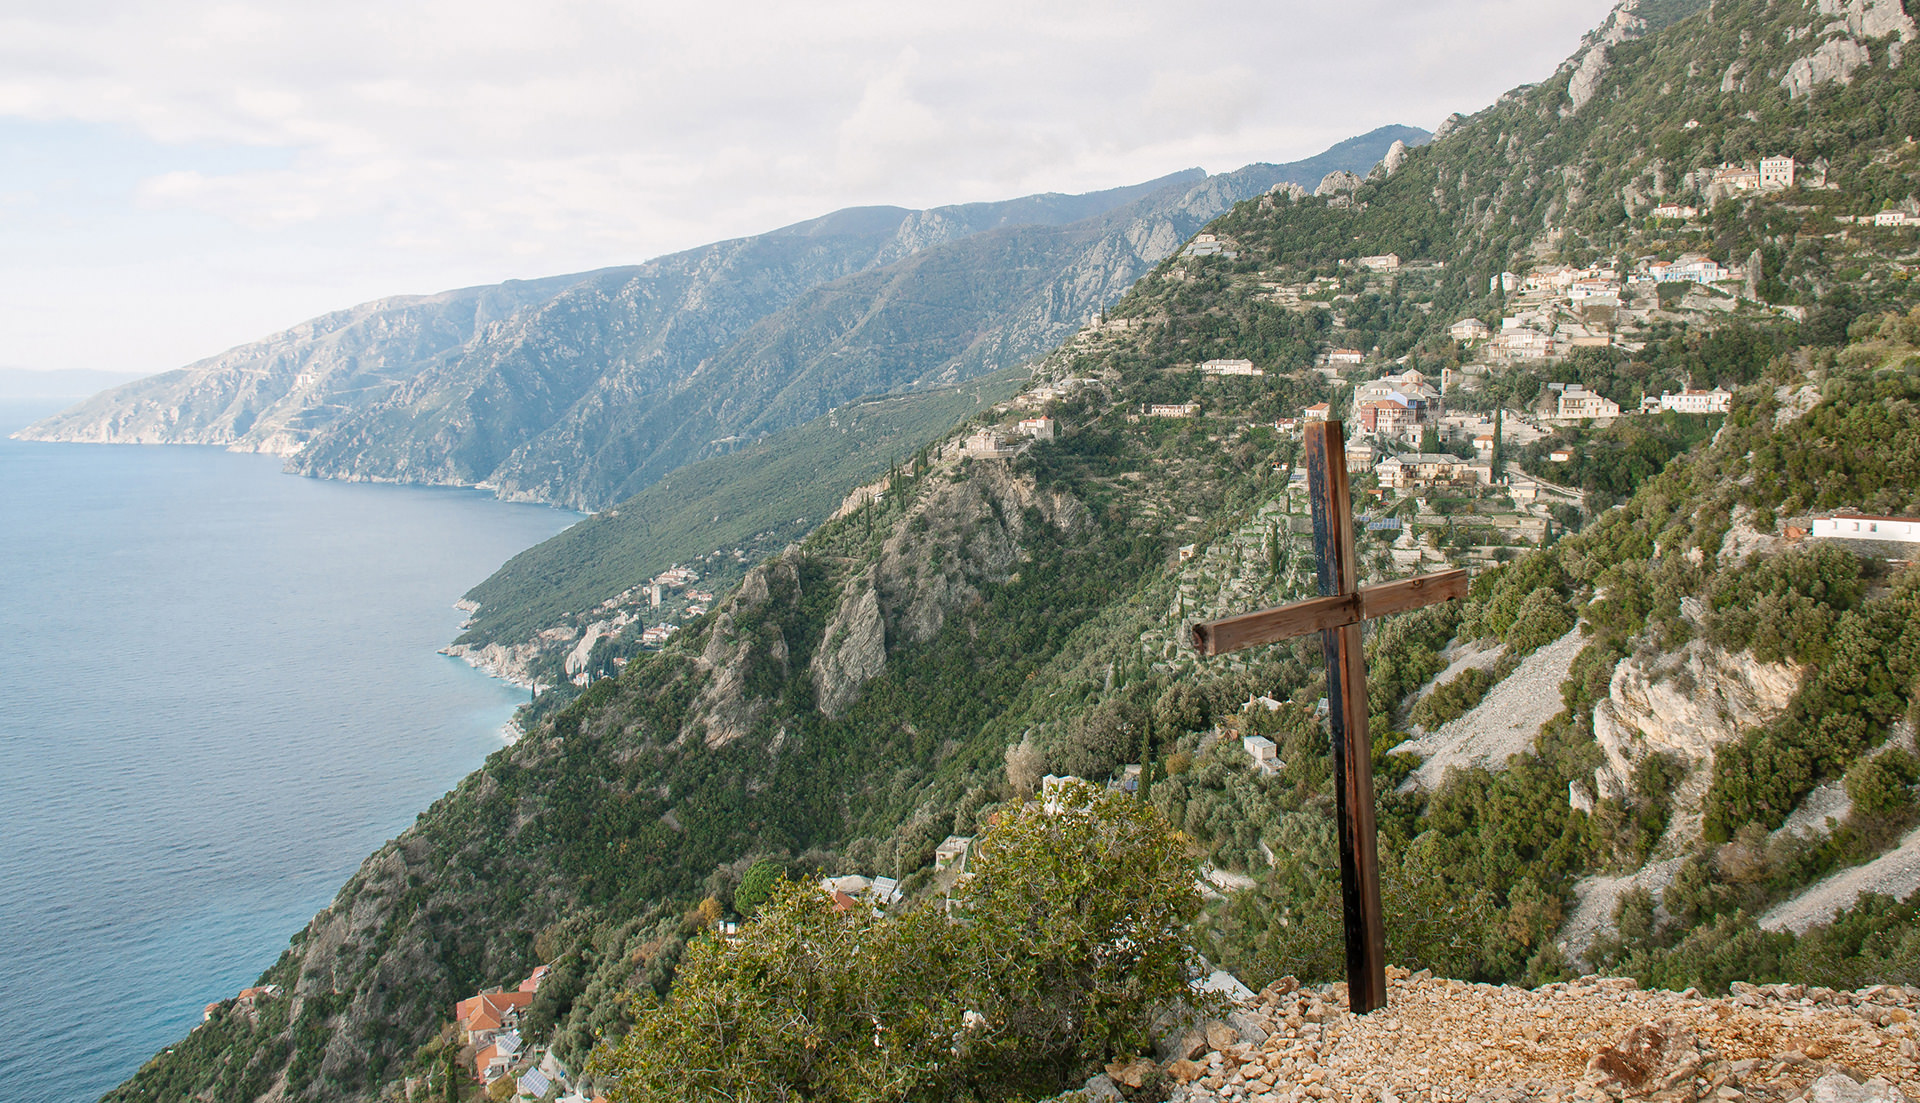 Virtual Tour of Mount Athos